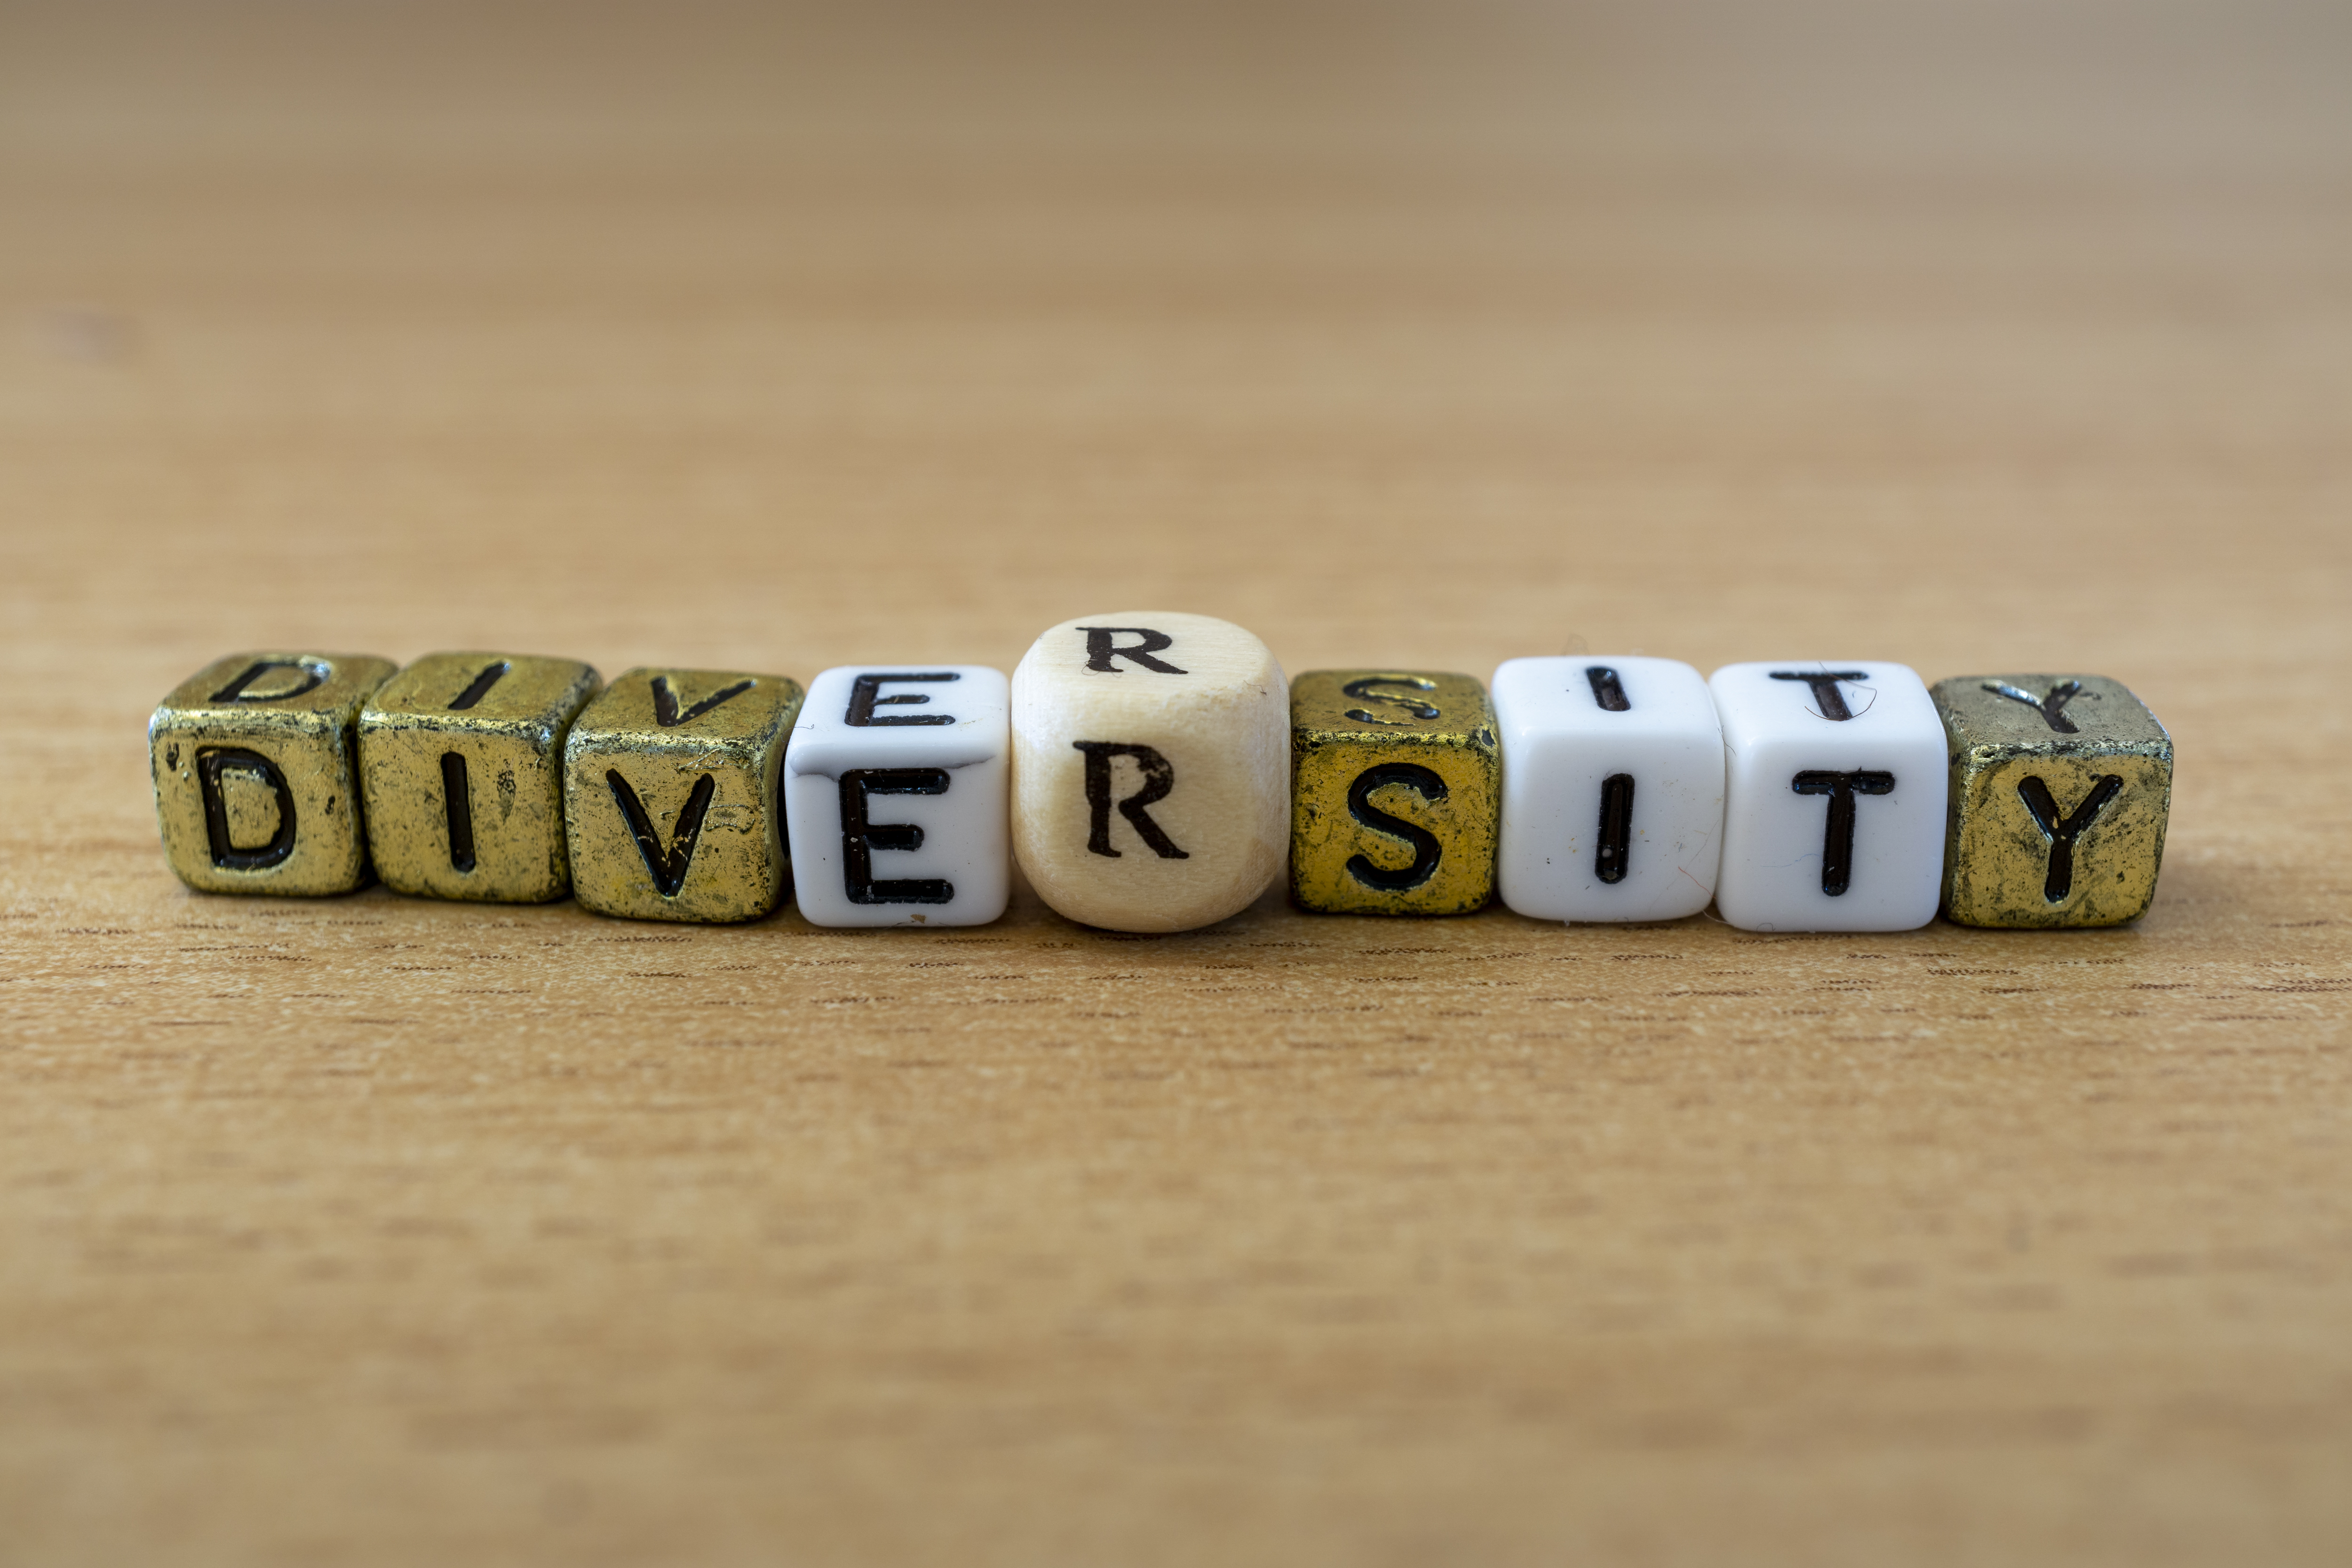 GettyImages-1163105002 (Diversity word sign on a wooden desk)